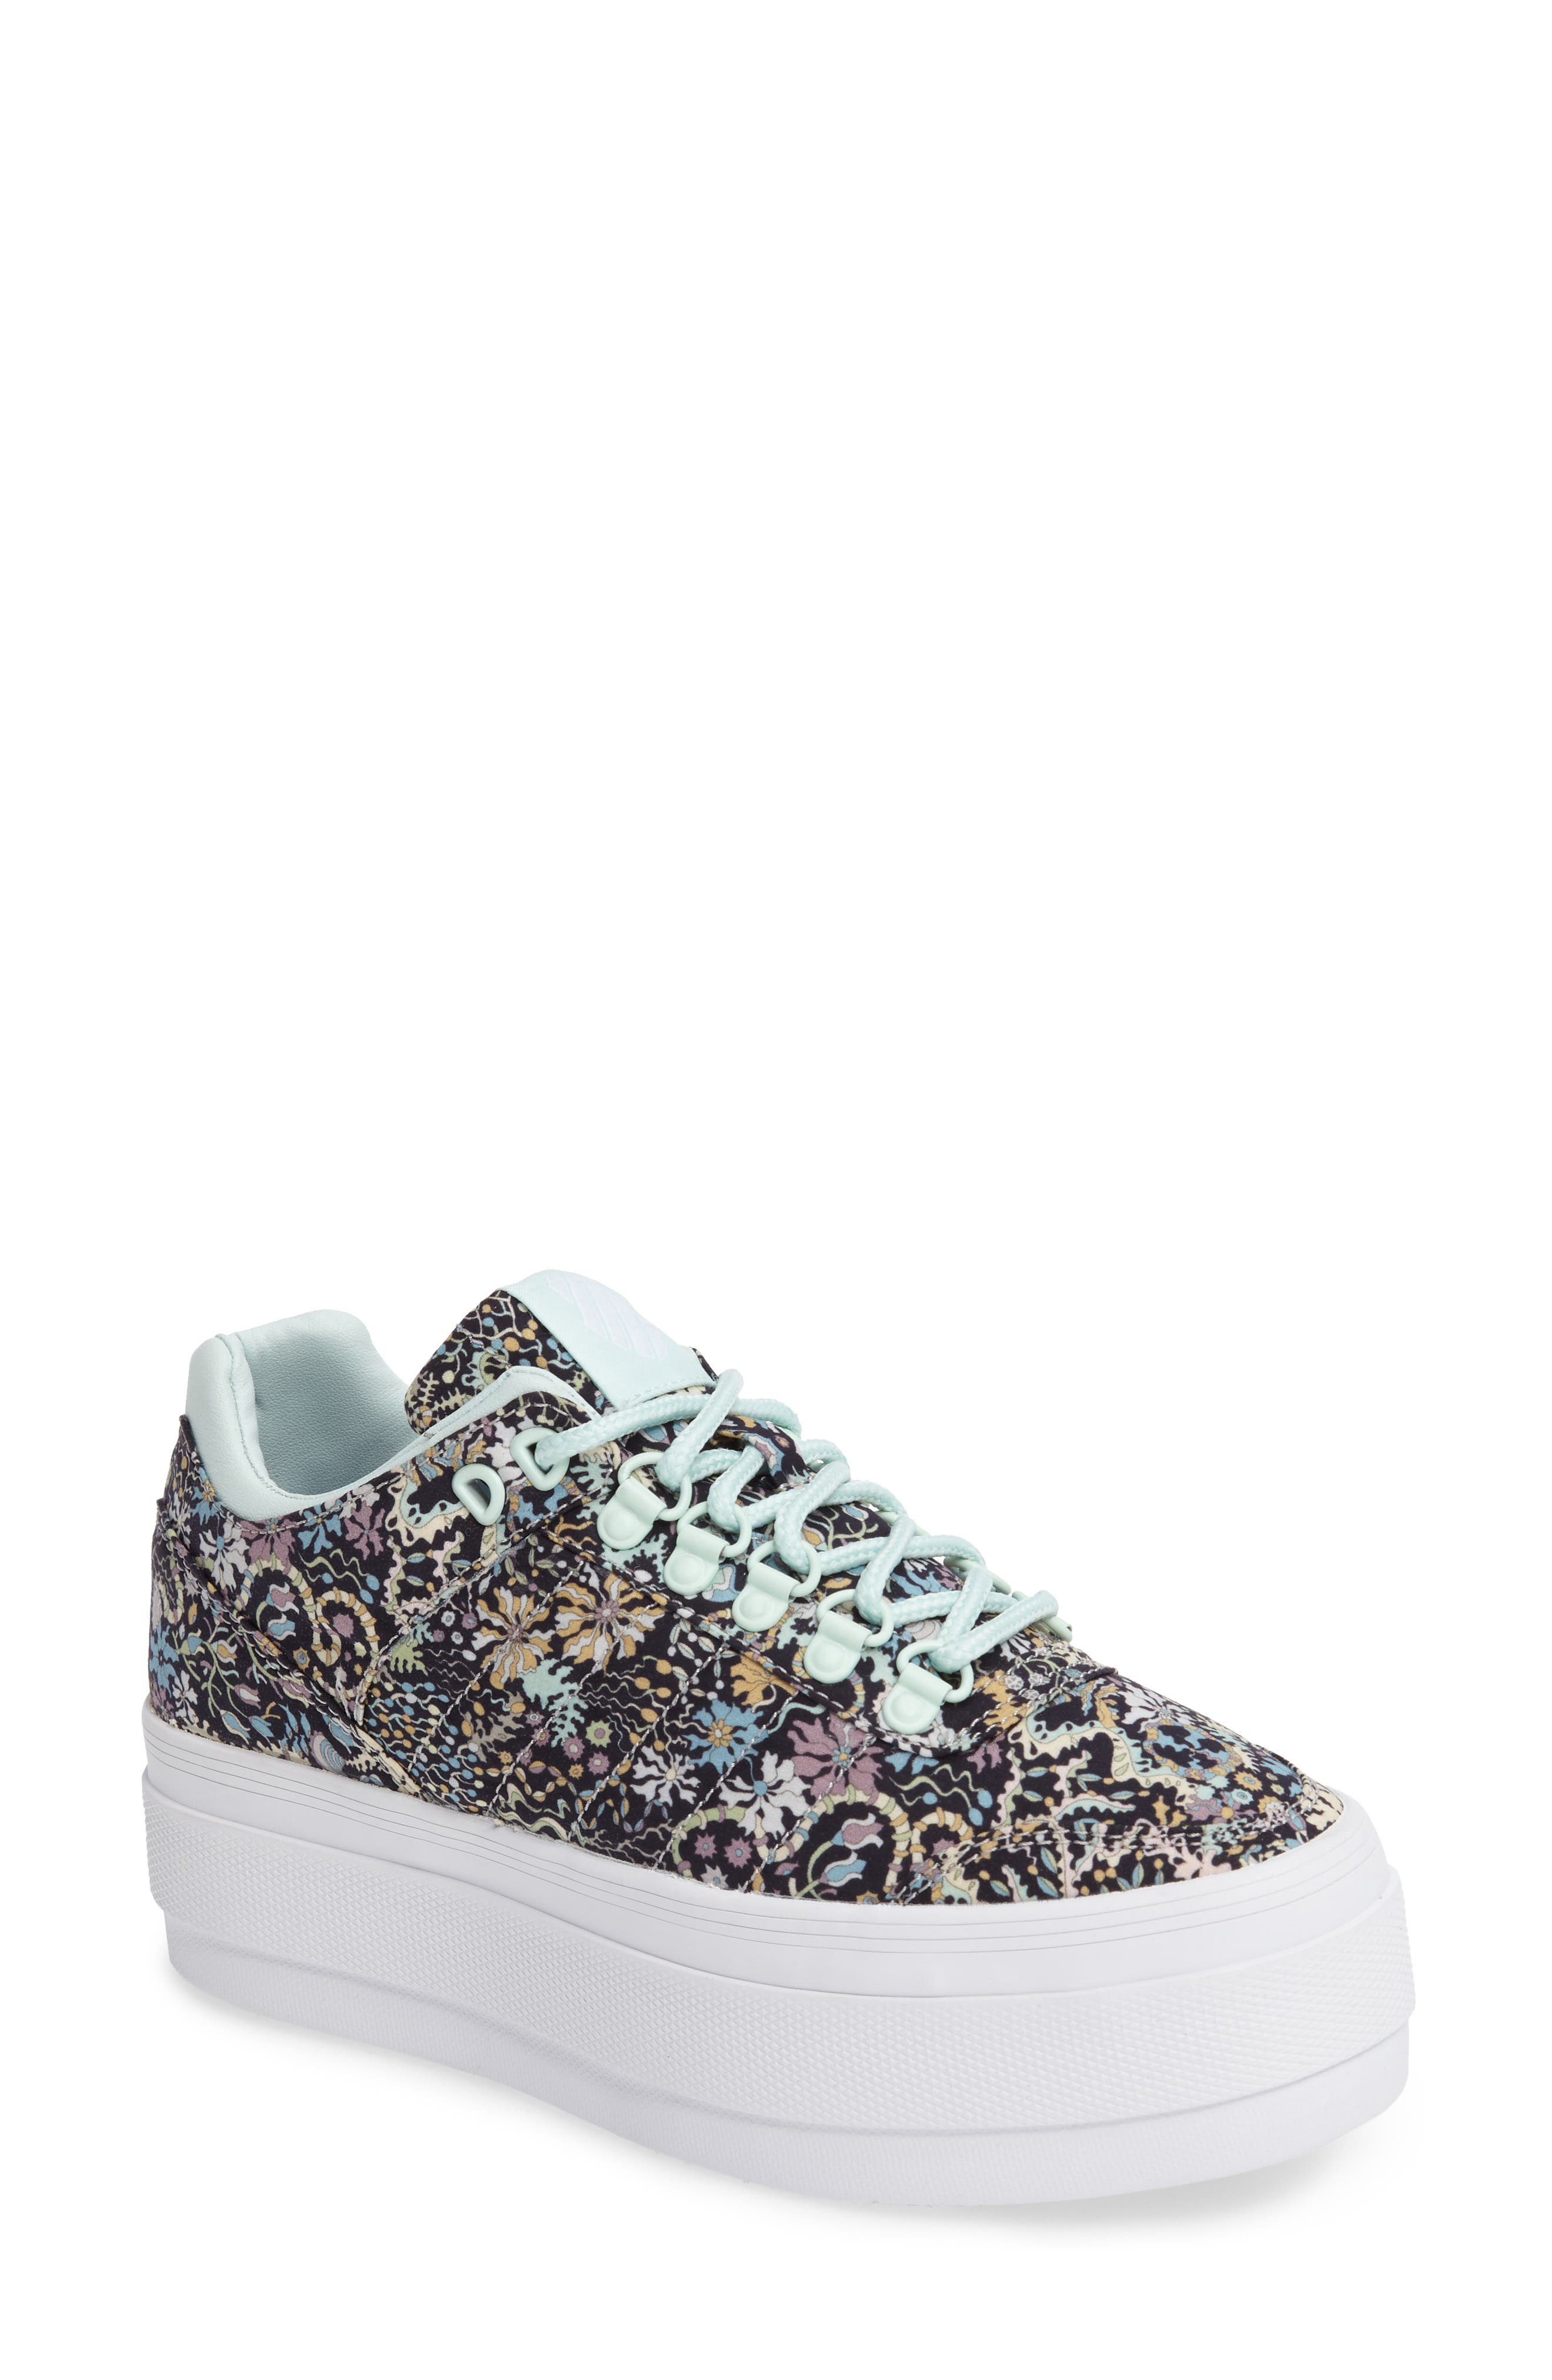 Alternate Image 1 Selected - K-Swiss Gstaad Flatform Sneaker (Women)